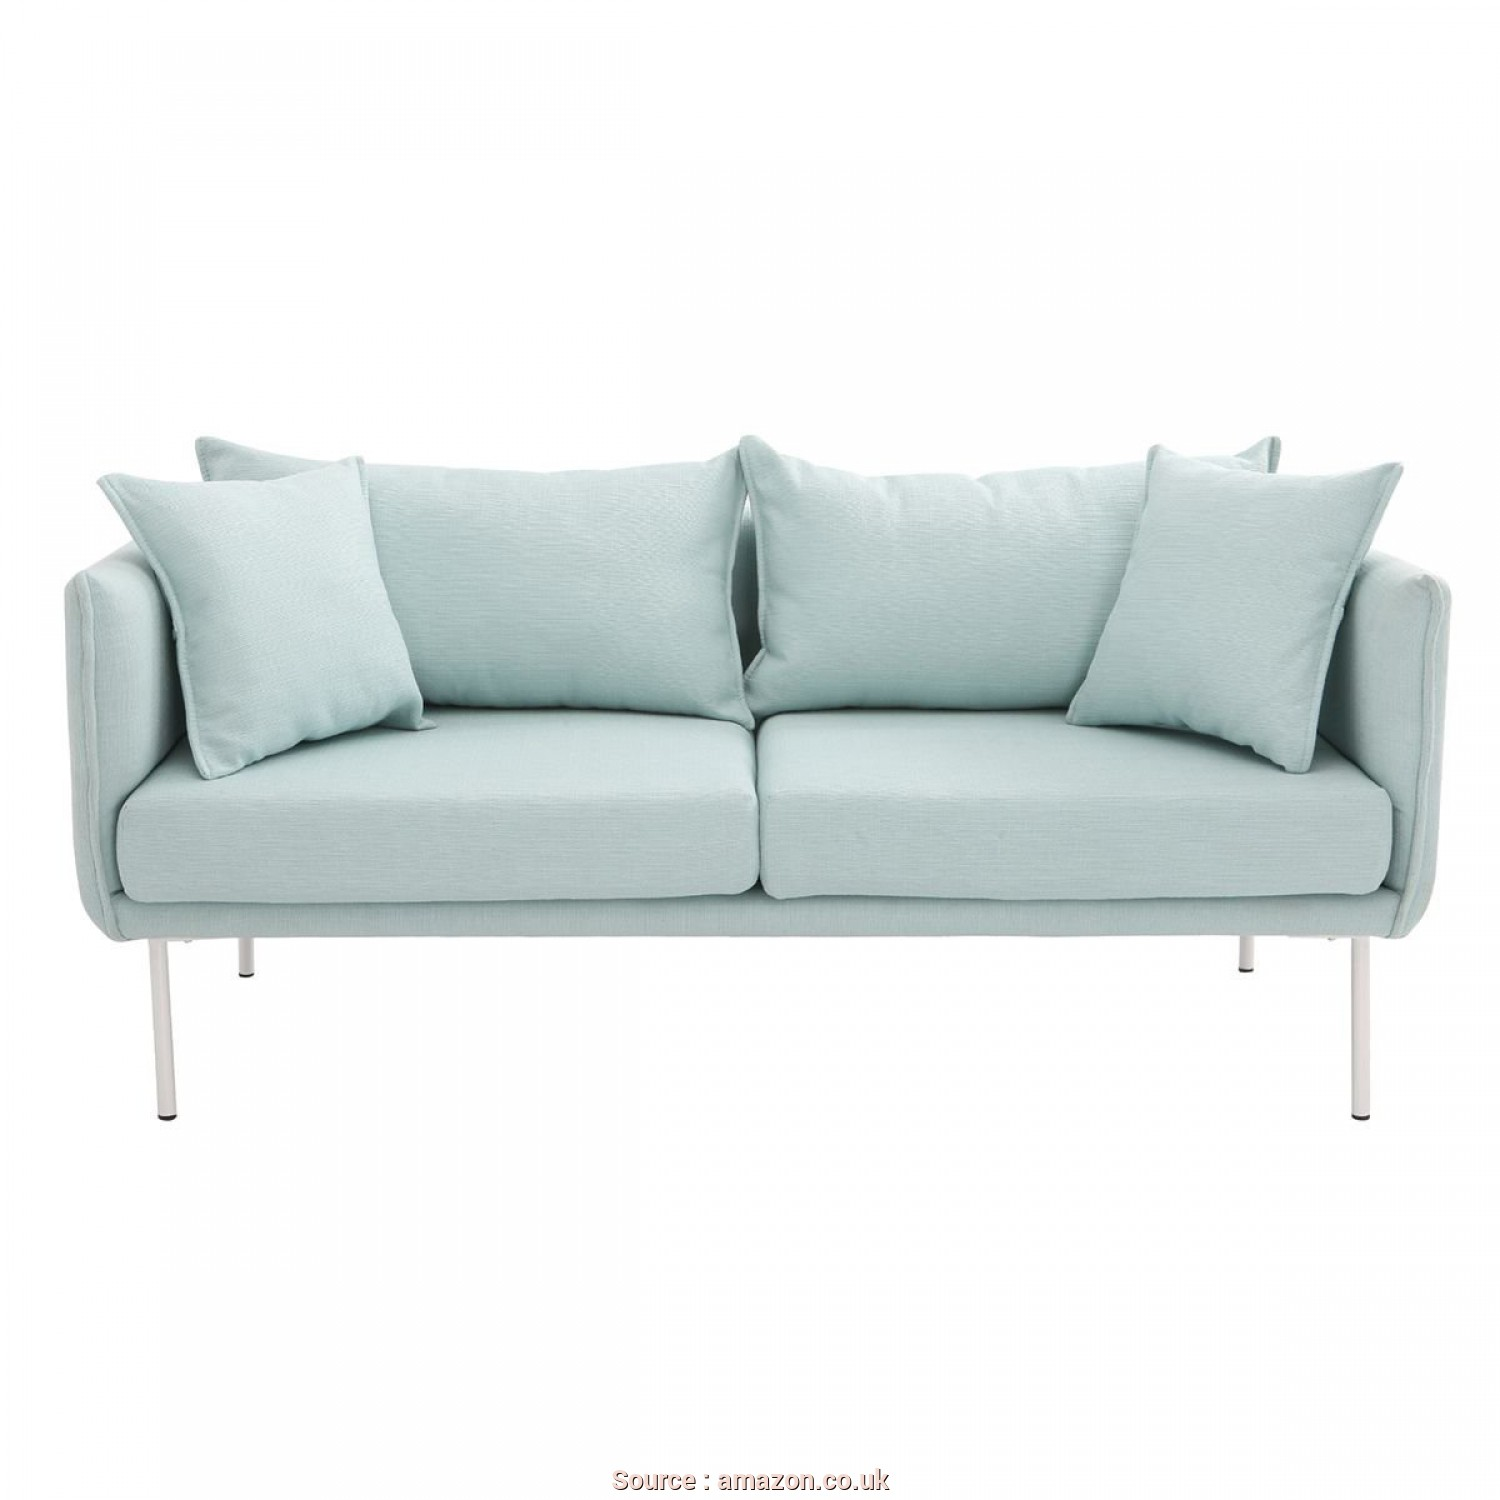 Miliboo Divani, Divertente Miliboo, Divani Design MATHIS Couch, Tres Plazas Green: Amazon.Co.Uk: Kitchen & Home